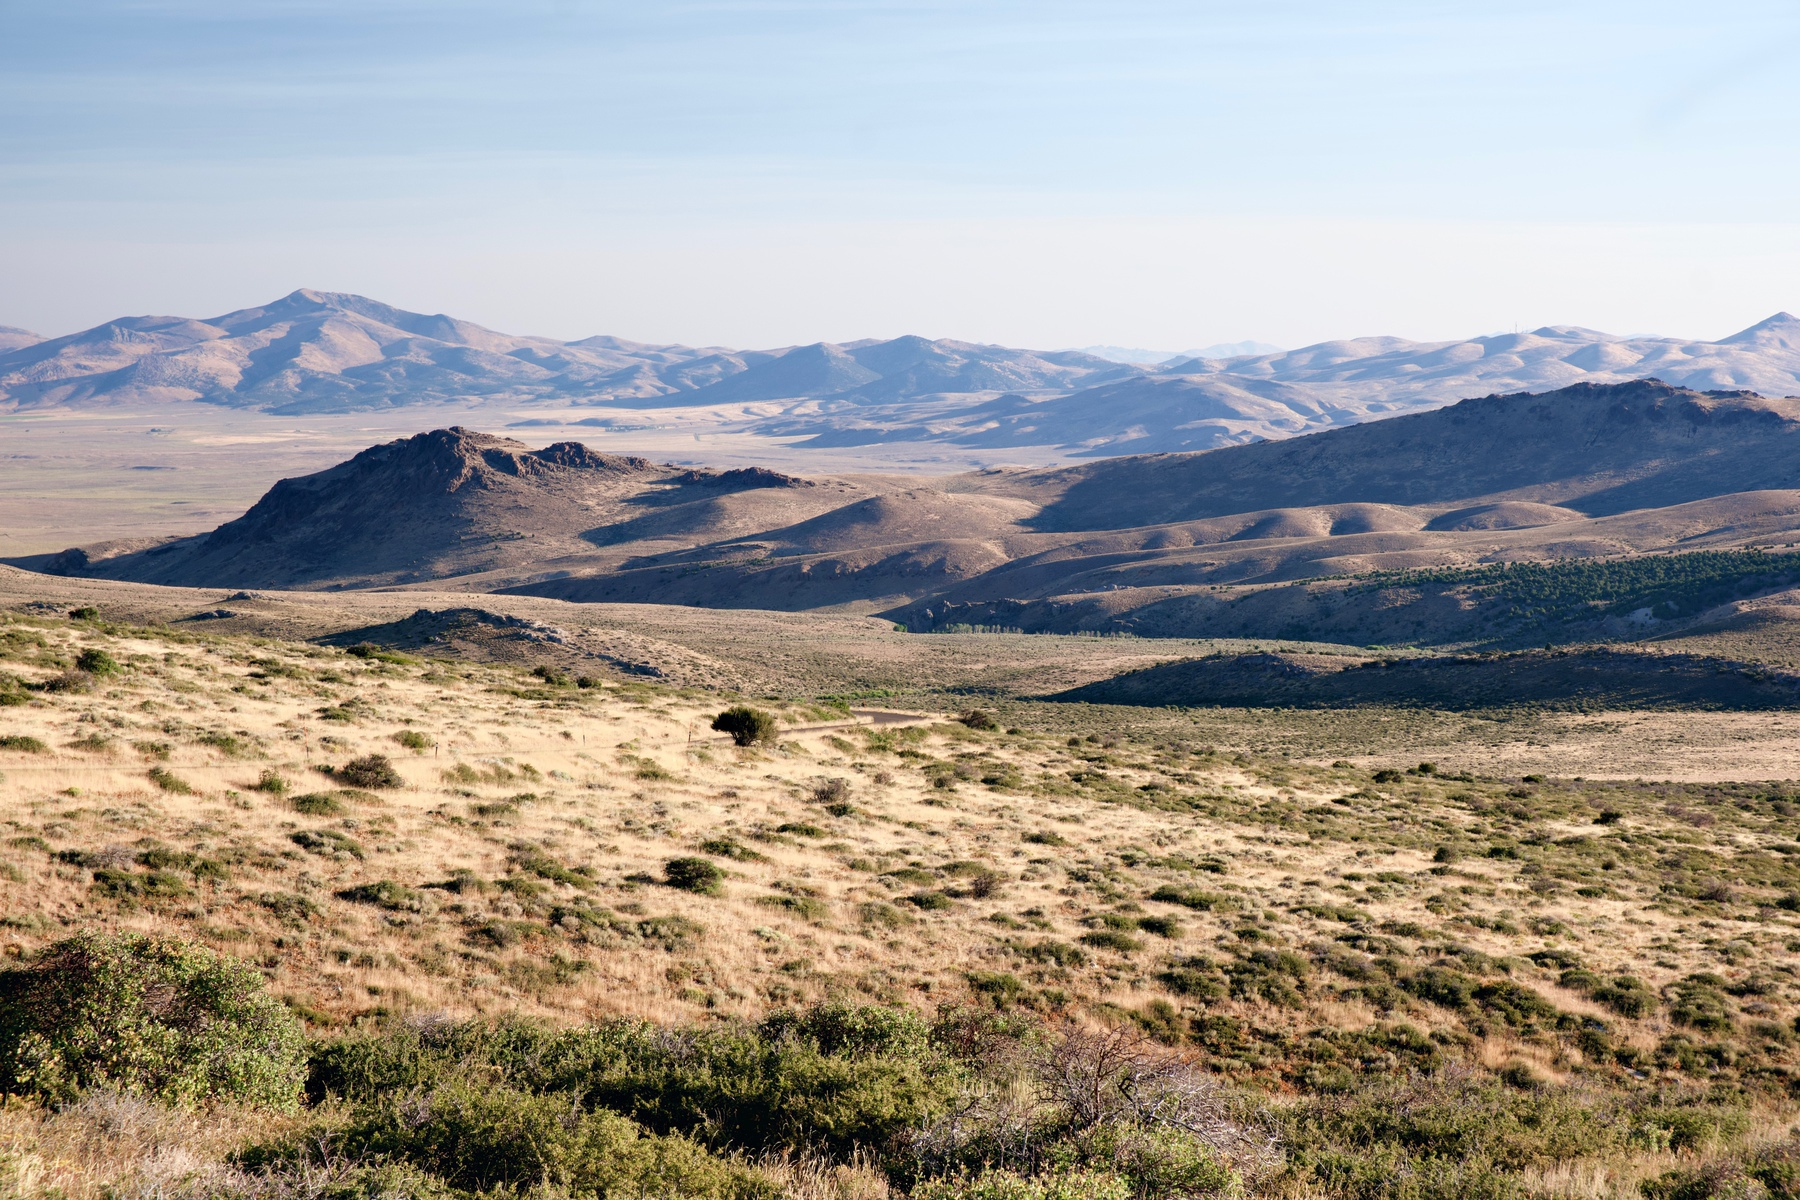 Hills and grasslands of the Humboldt–Toiyabe National Forest